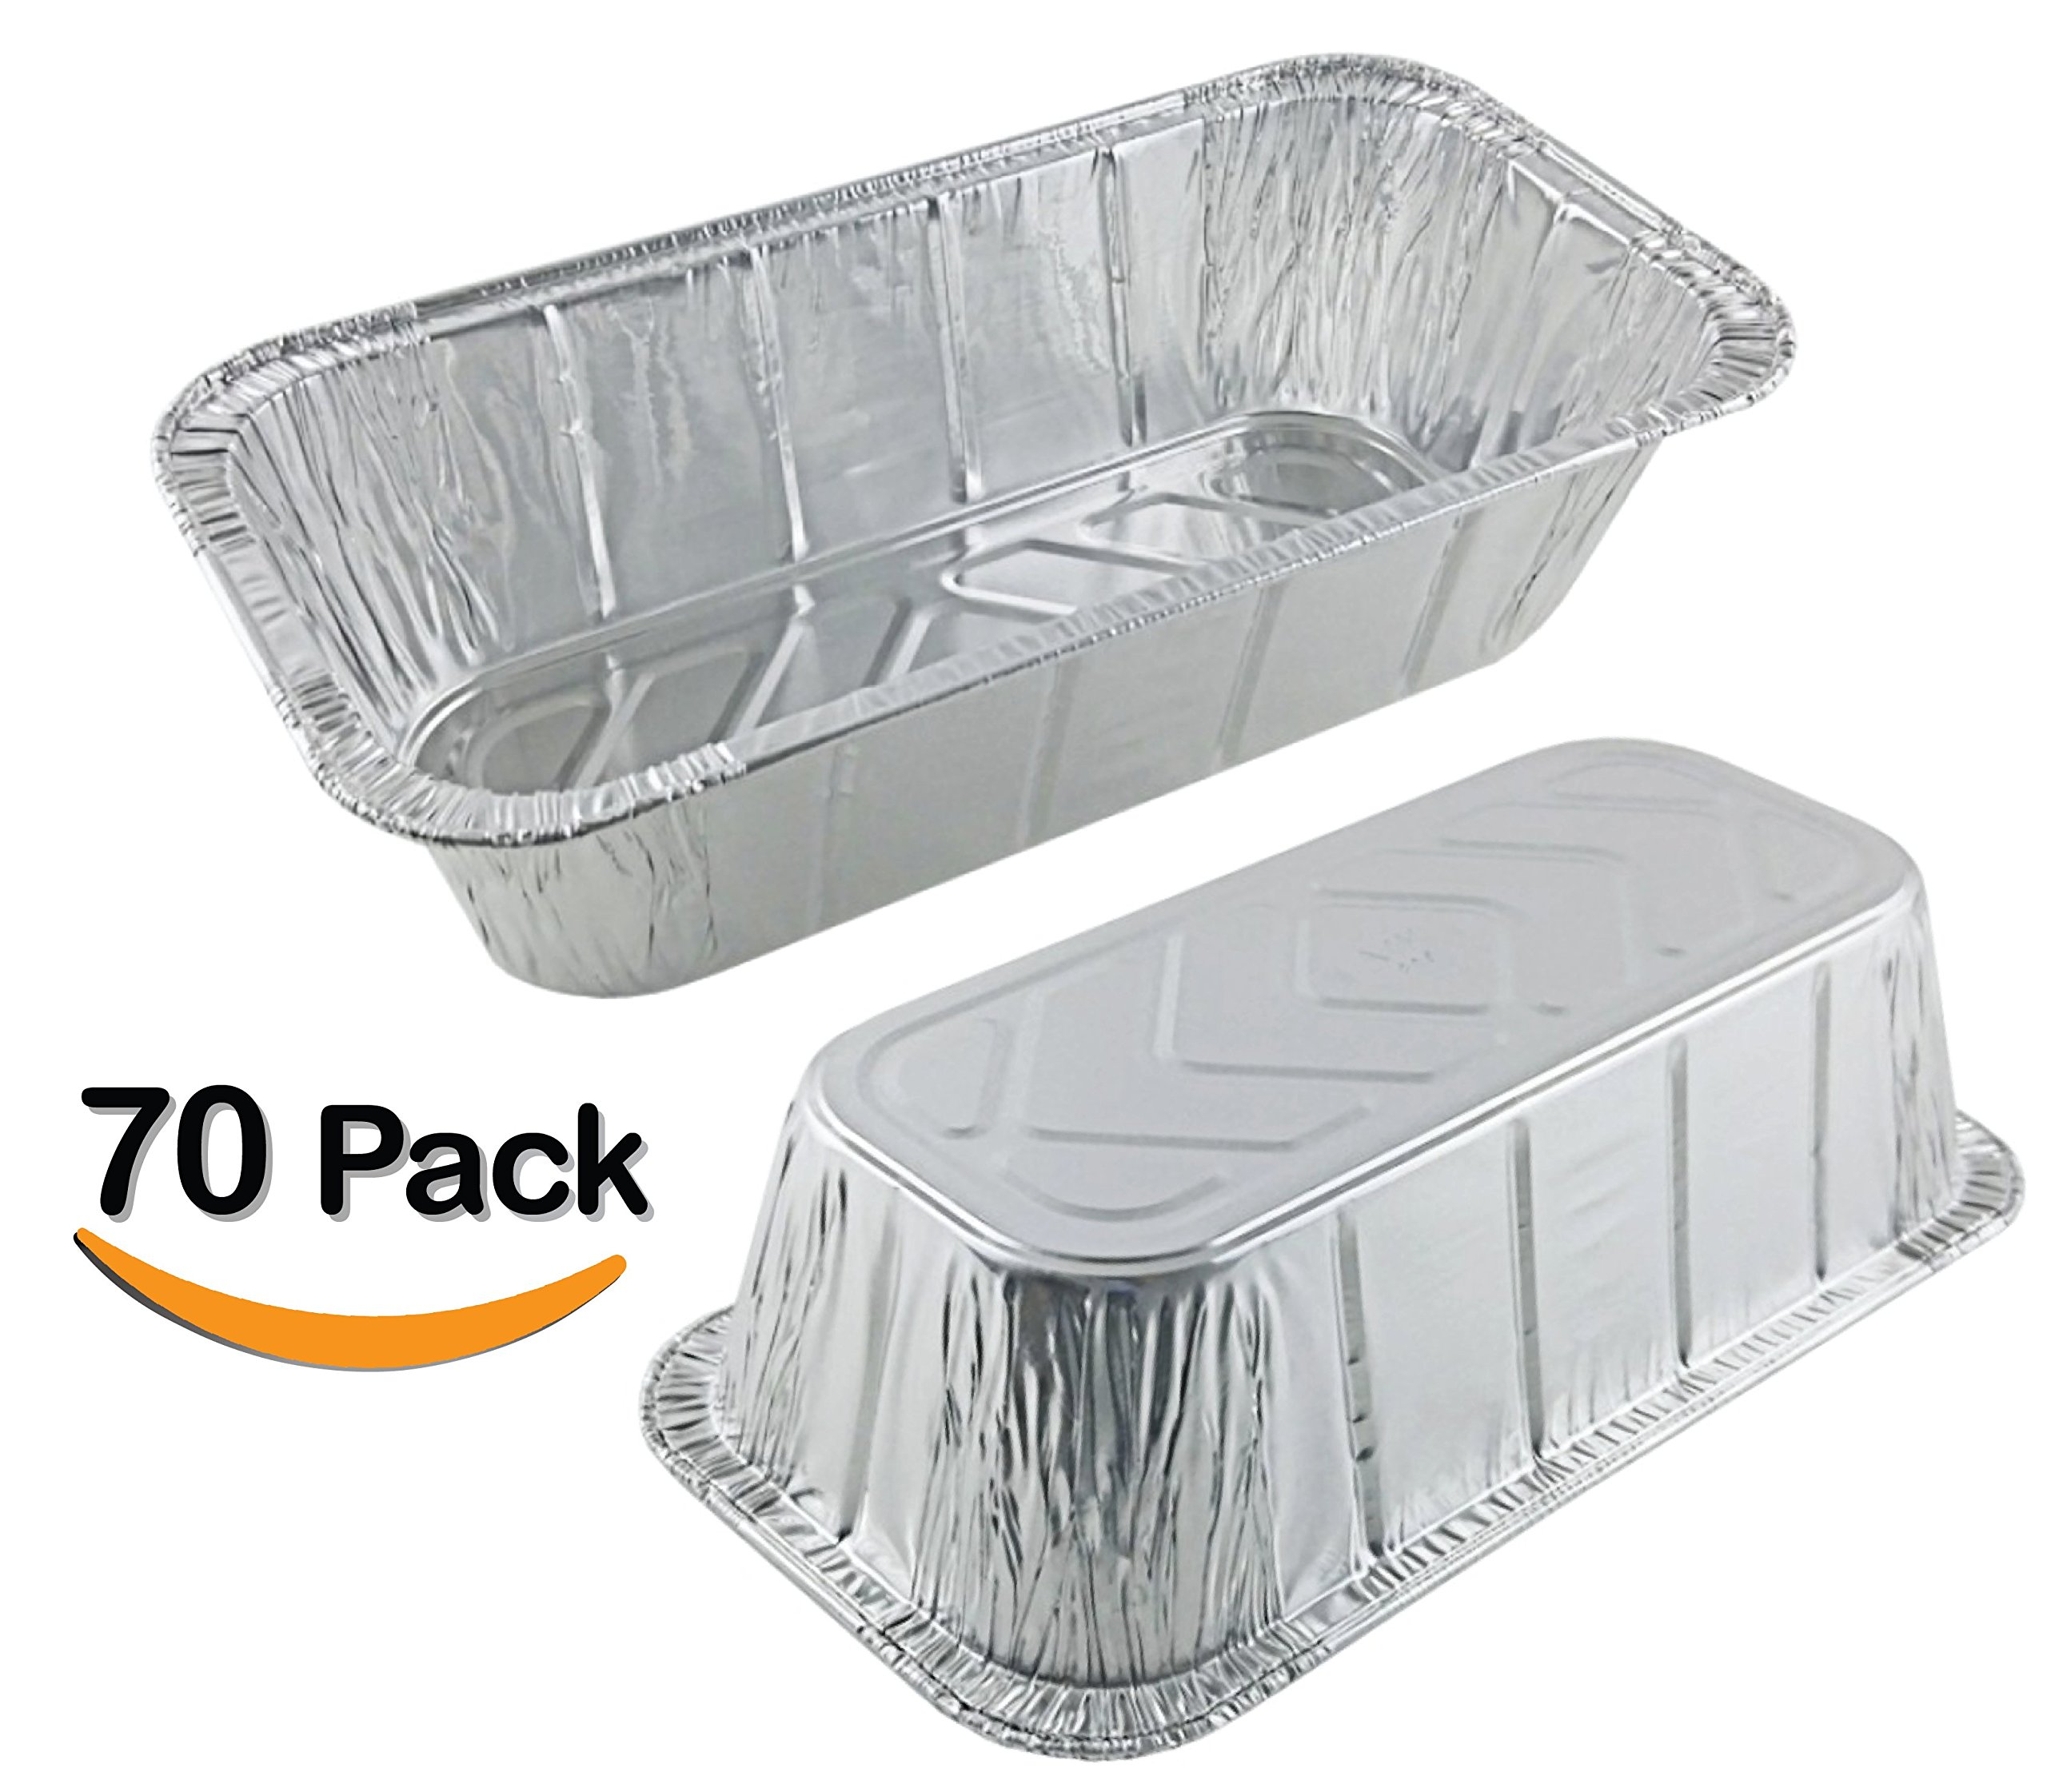 70 Pack 2LB - Loaf Pans - Bread Pans l Disposable Aluminum Loaf Pans, Aluminum Bread Pans l For Homemade Cakes and Breads, Meatloaf - Standard Size, 2 Pounds - 8.5'' X 4.5'' X 2.5''